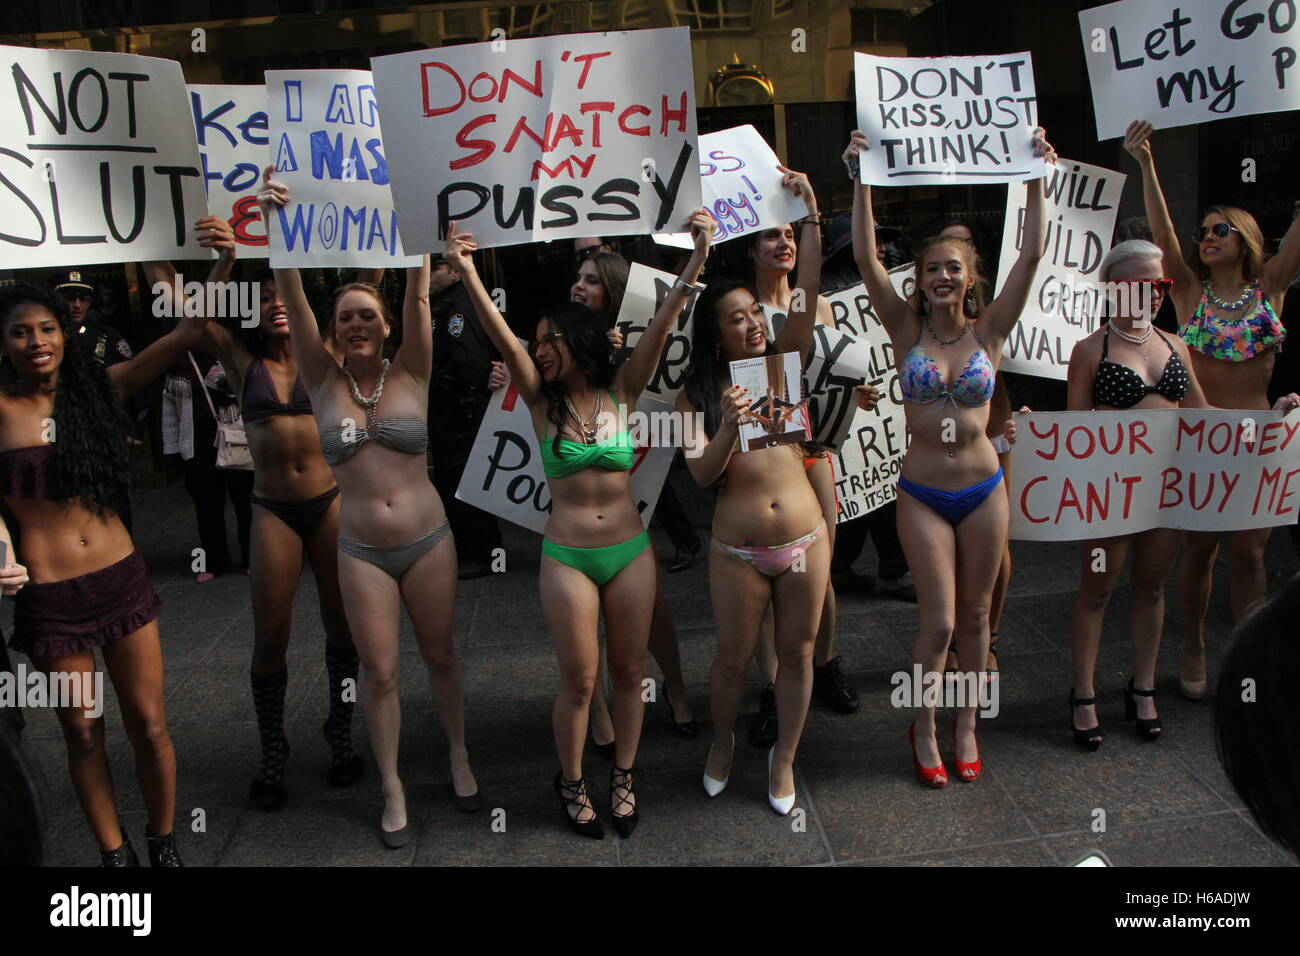 Girls in bikinis protest trump Bikini Clad Women High Resolution Stock Photography And Images Alamy